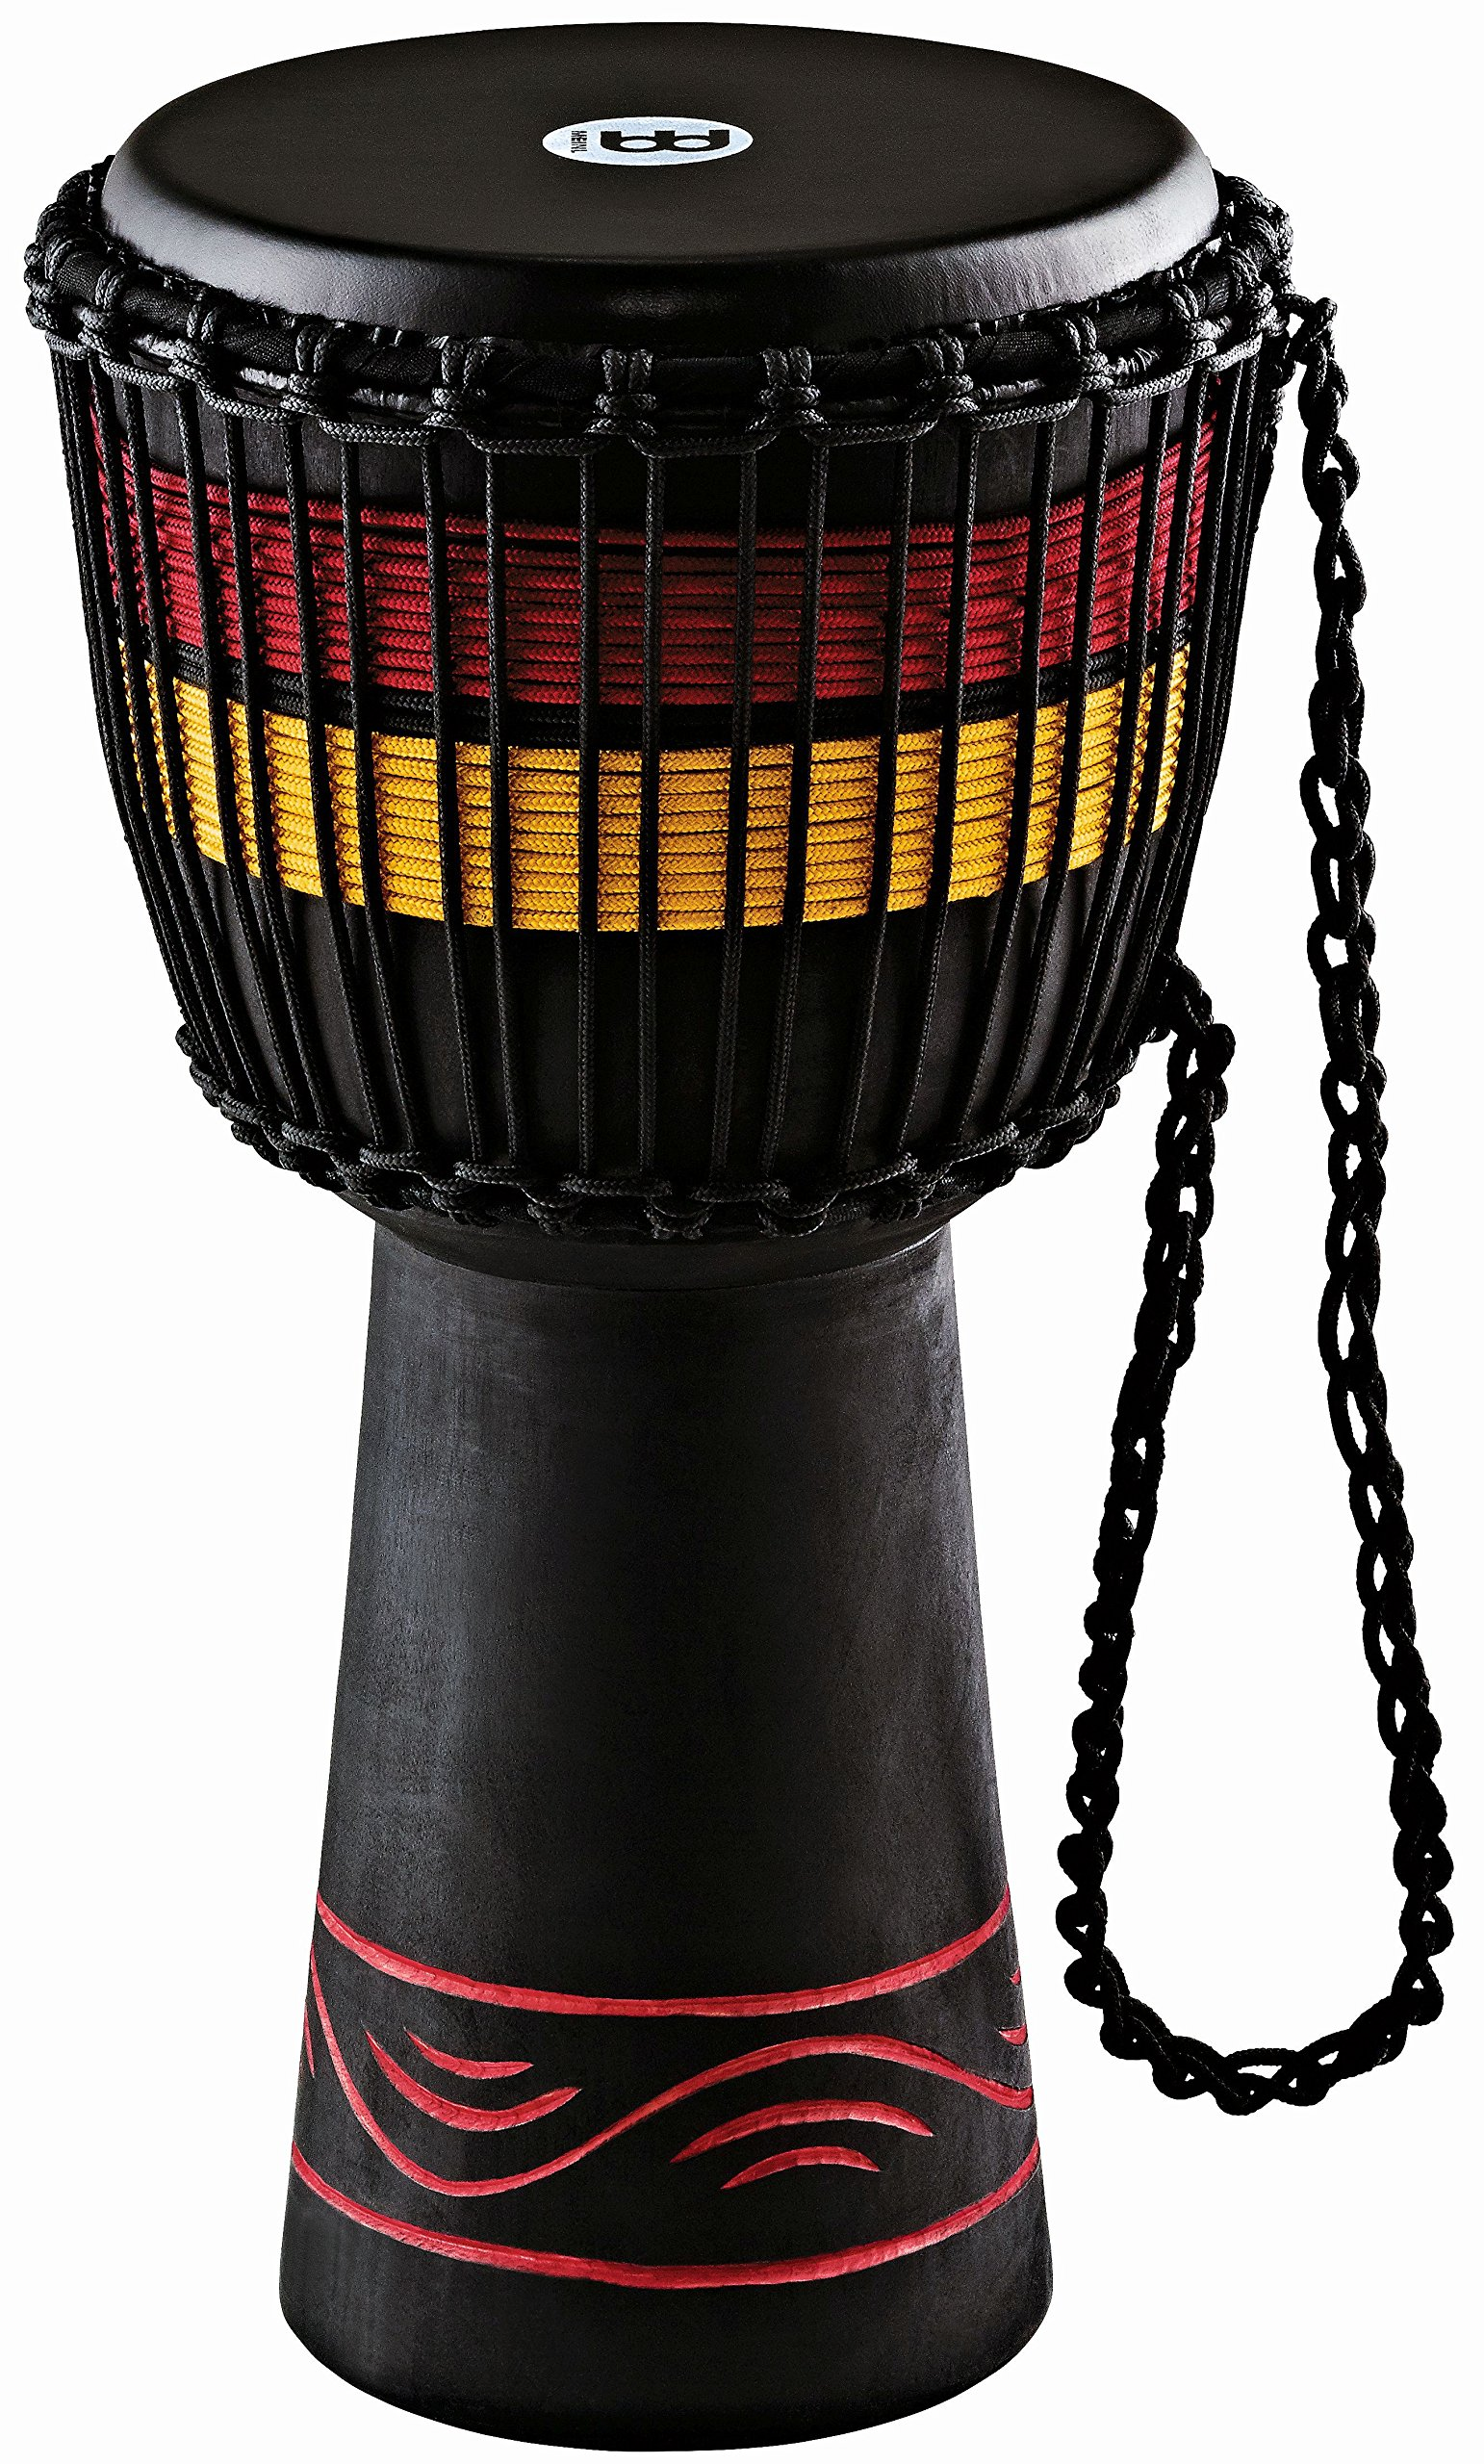 Meinl Percussion ADJ7-M African Style Fire Rhythm Series Rope Tuned 10-Inch Wood Djembe, Black, 10'' x 20'' (